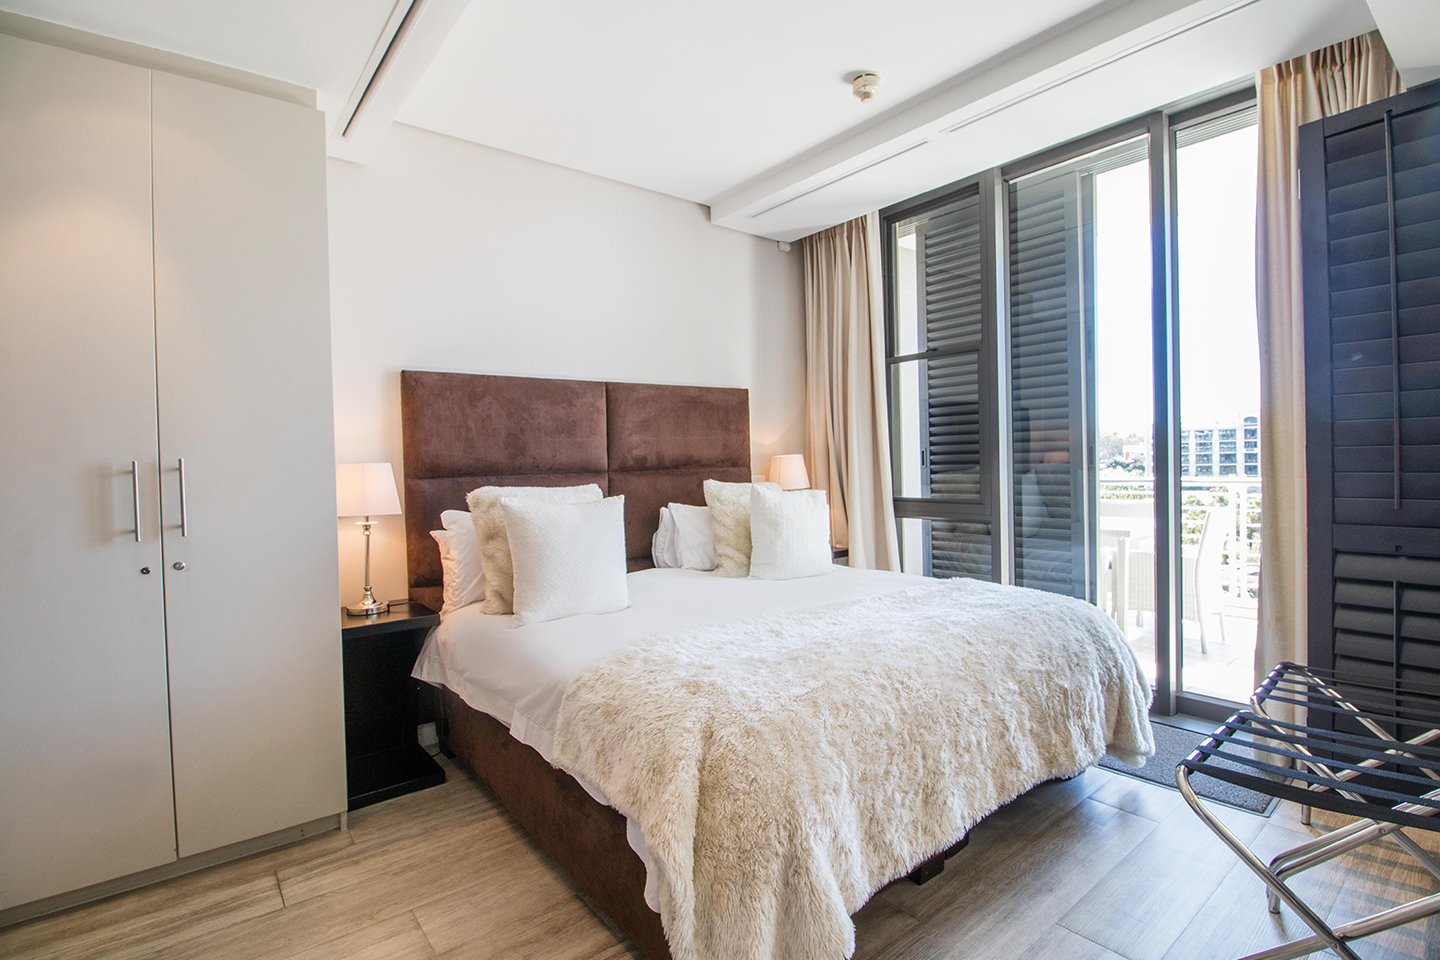 Bedroom at Waterfront Village